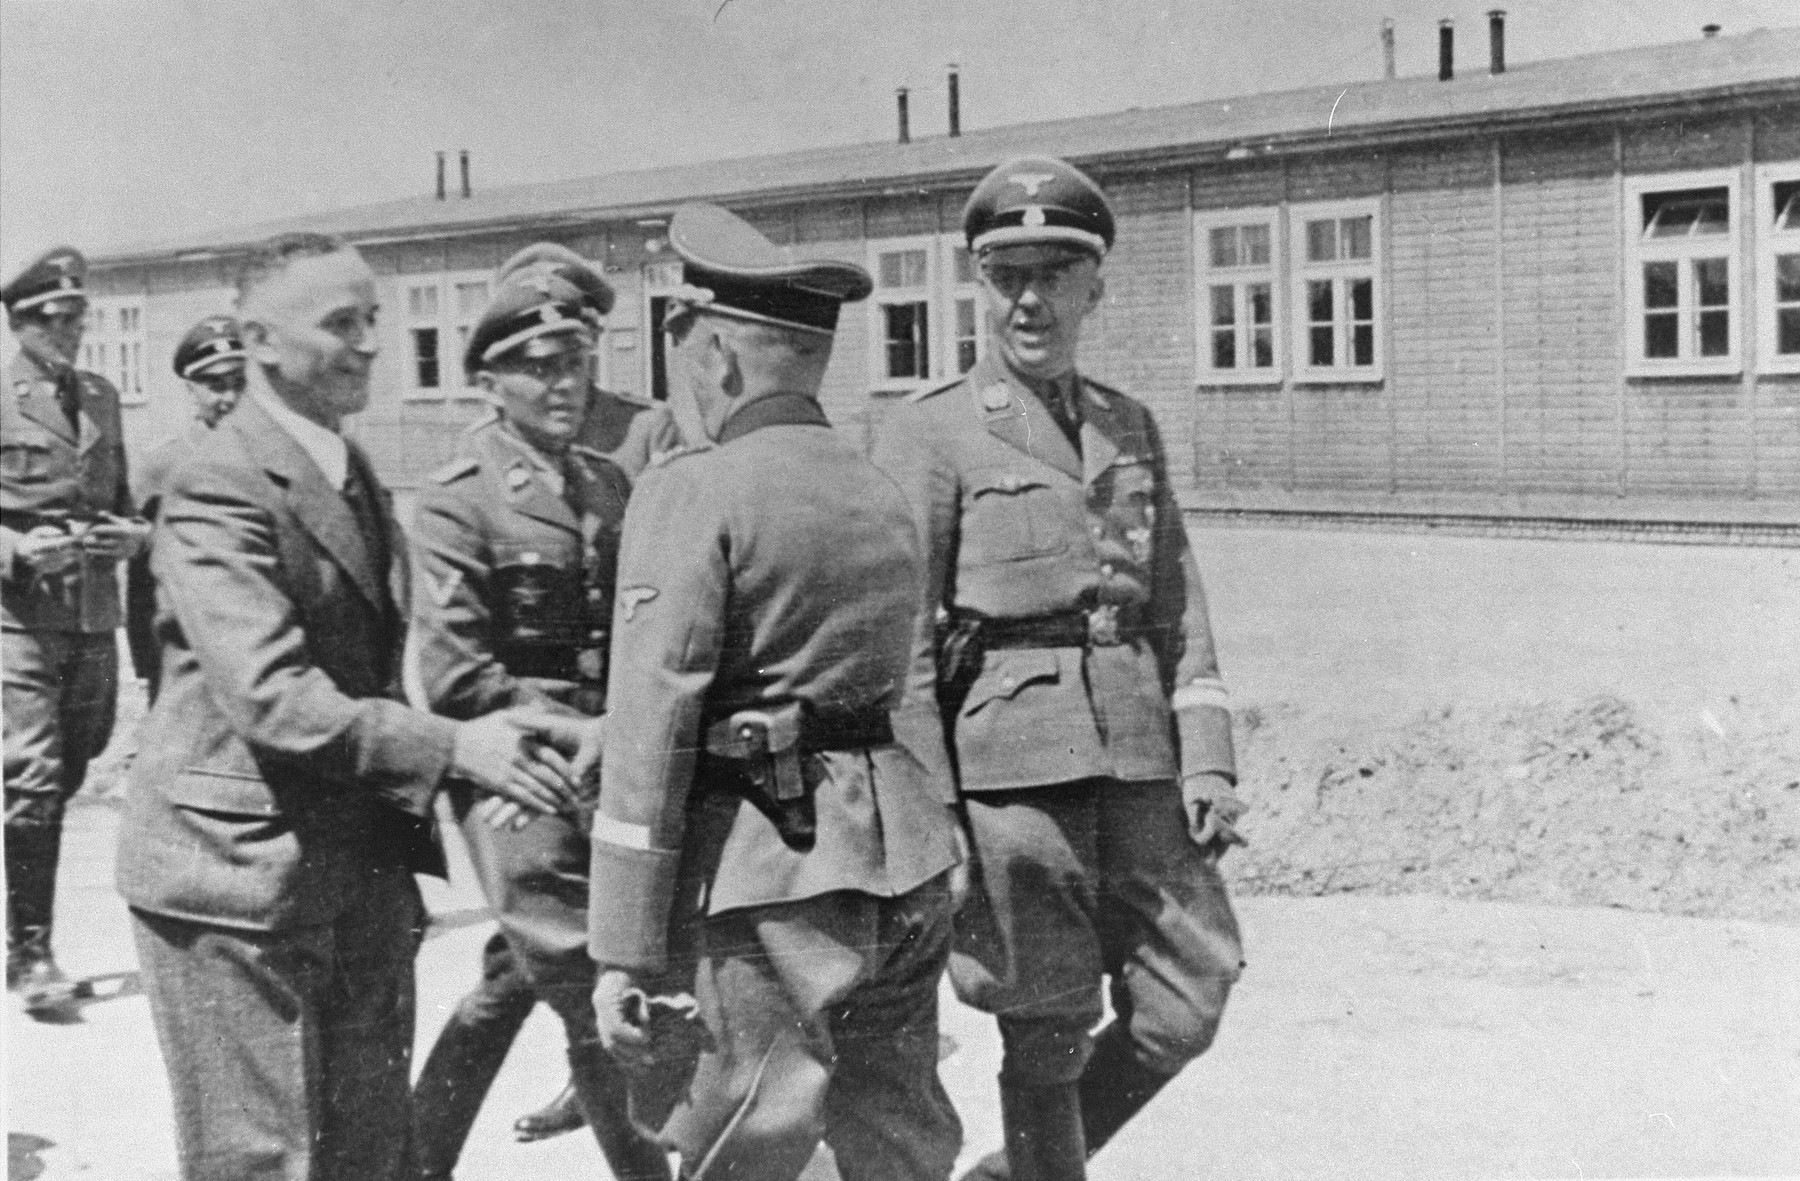 Officials at the Monowitz-Buna building site greet Reichsfuehrer SS Heinrich Himmler and his inspection team.     Among those pictured are Max Faust (left, wearing a suit), the manager of building operations for IG Farben in Monowitz-Buna; Auschwitz commandant Rudolph Hoess (second from the left, next to Faust); SS Obergruppenfuehrer Ernst Schmauser (shaking hands with Faust), and SS-Reichsfuehrer Heinrich Himmler (far right).